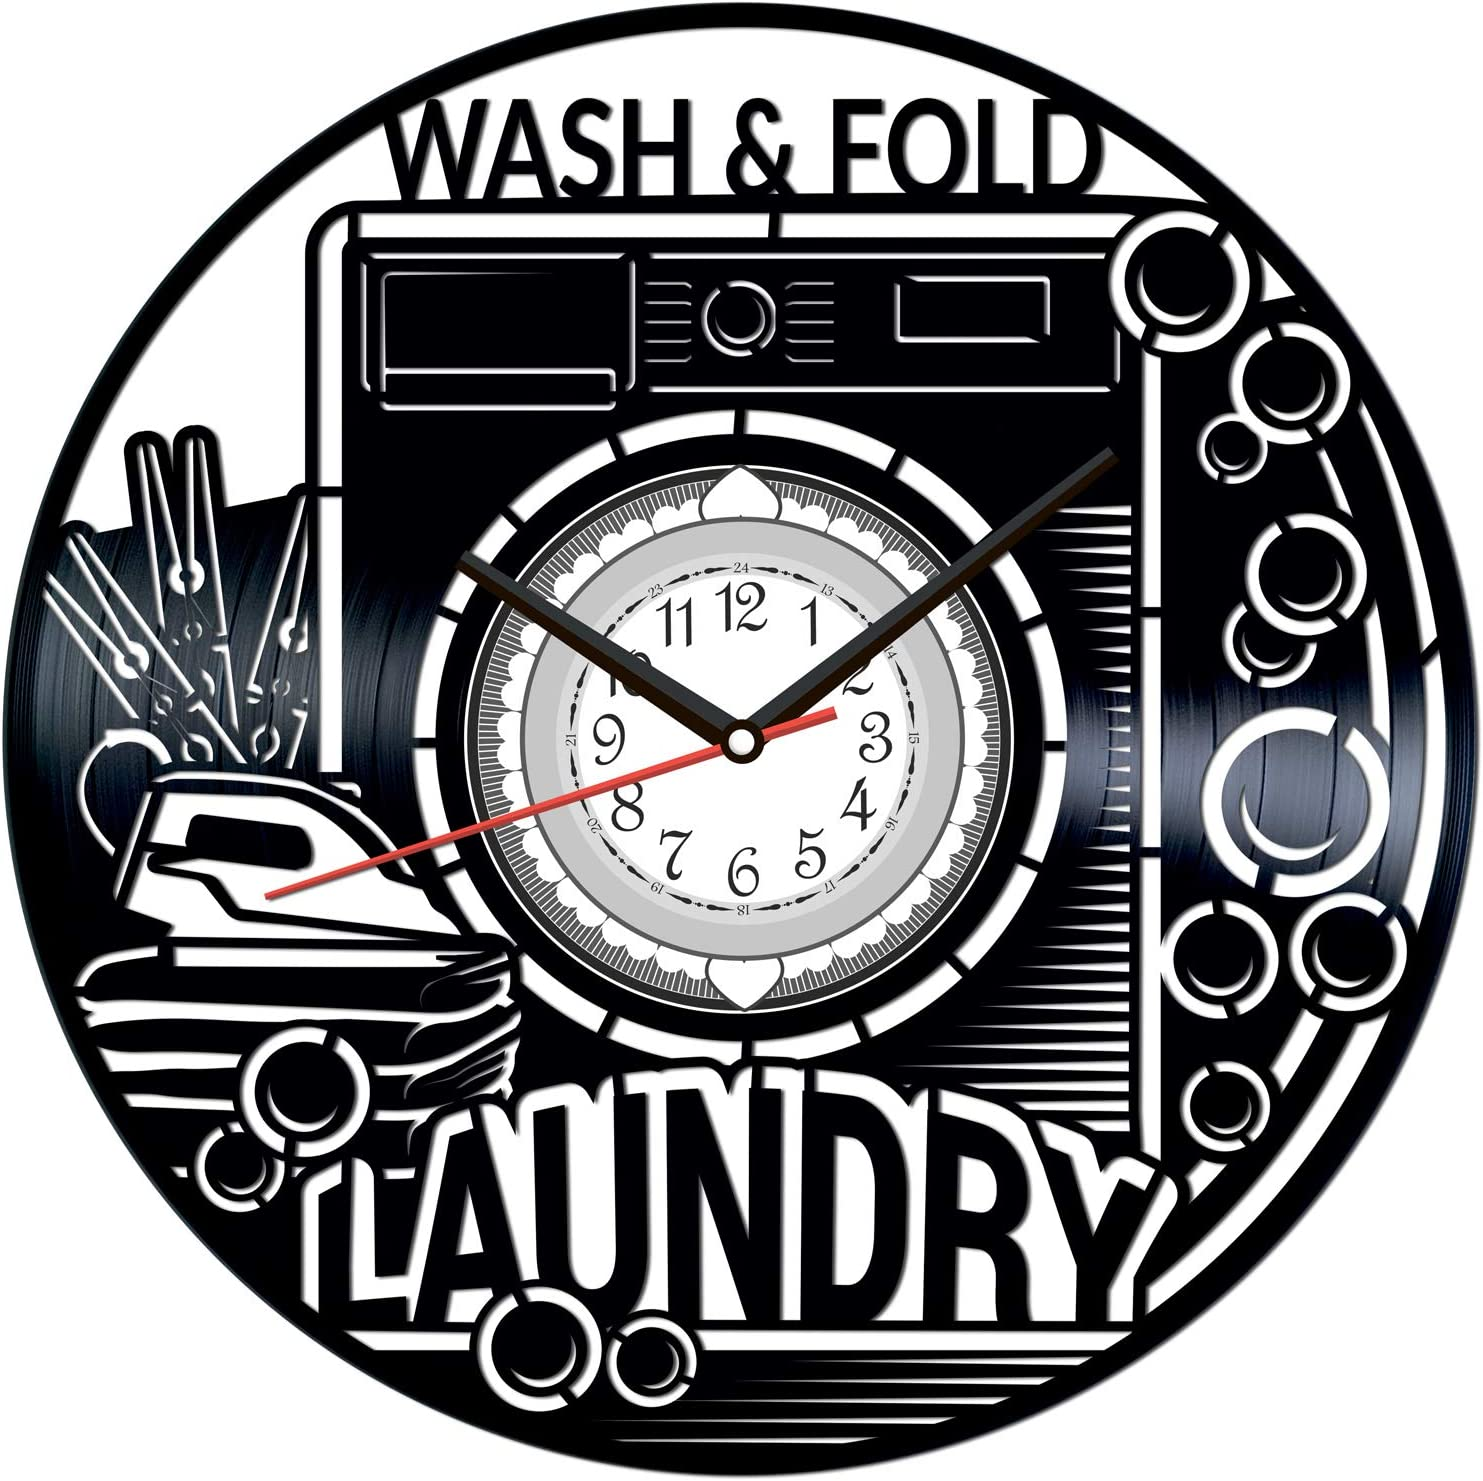 Laundry Vintage Vinyl Wall Clock - Great Home Decor for Bedroom Kitchen Living Room Idea Birthday Christmas Anniversary for Him Her - Unique Wall Art - Size 12 Inches